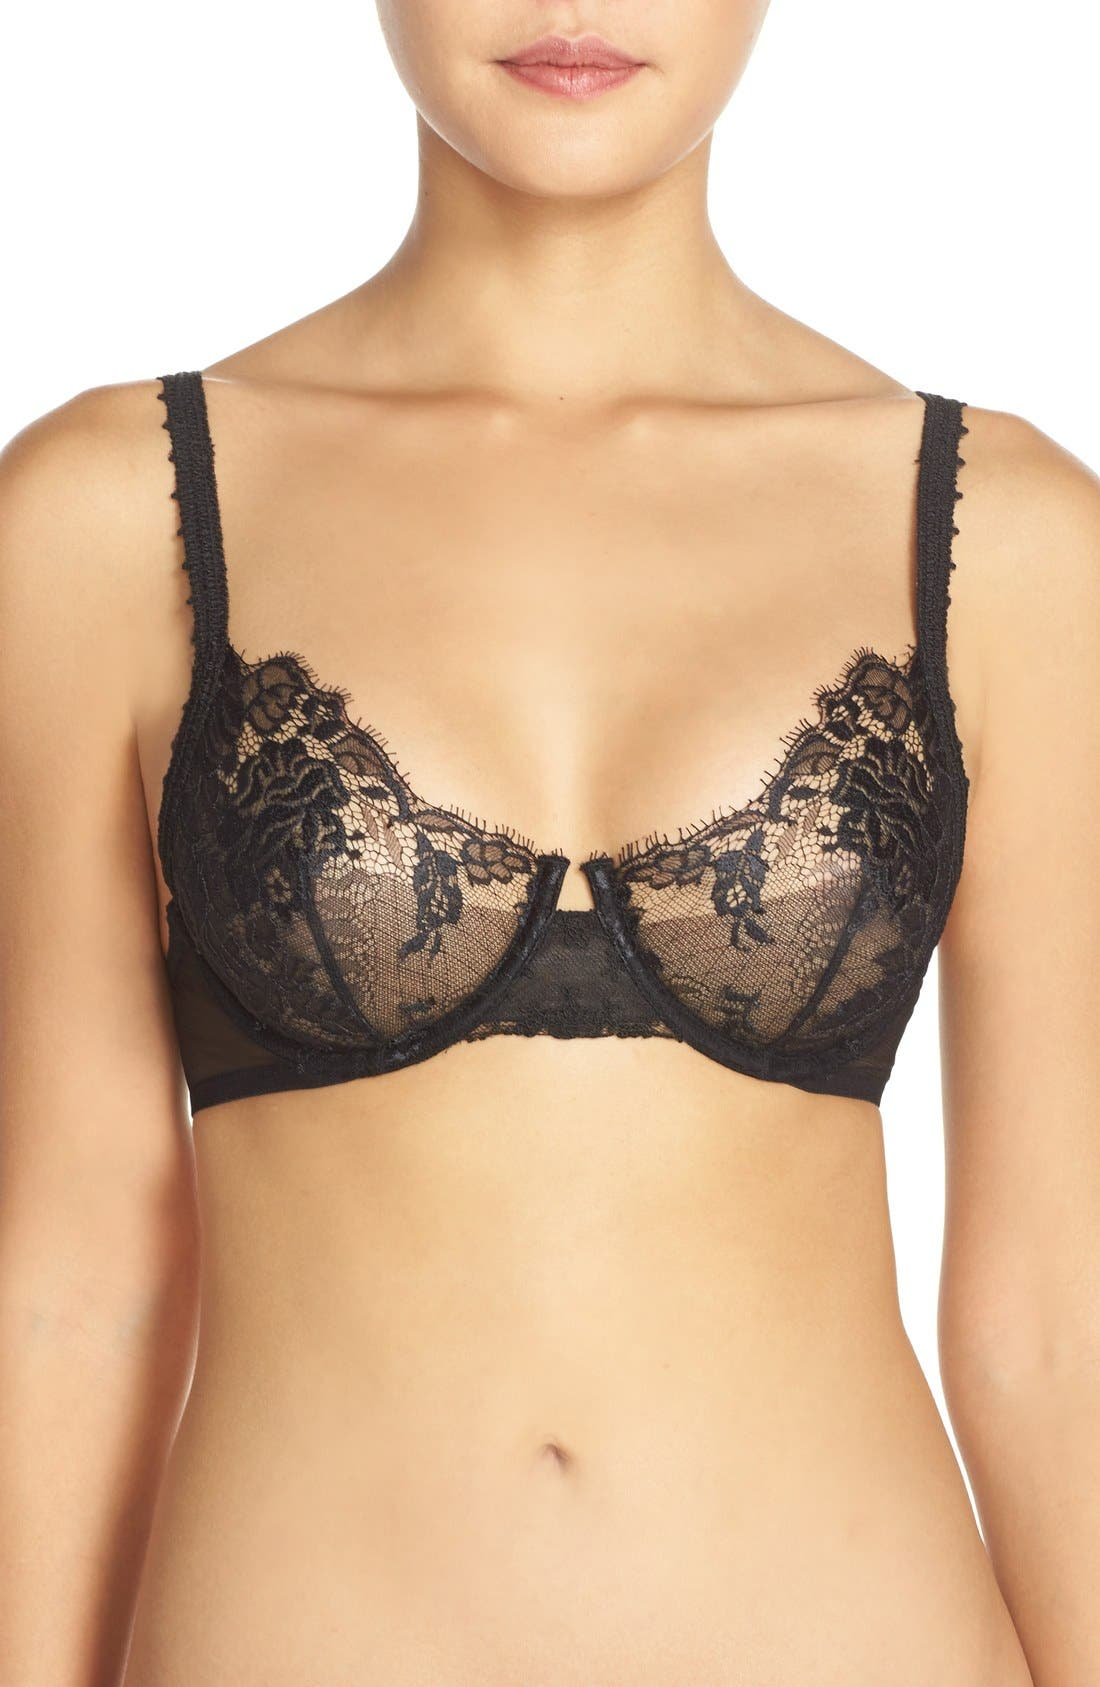 Alternate Image 1 Selected - La Perla 'Maharani' Underwire Balconette Bra